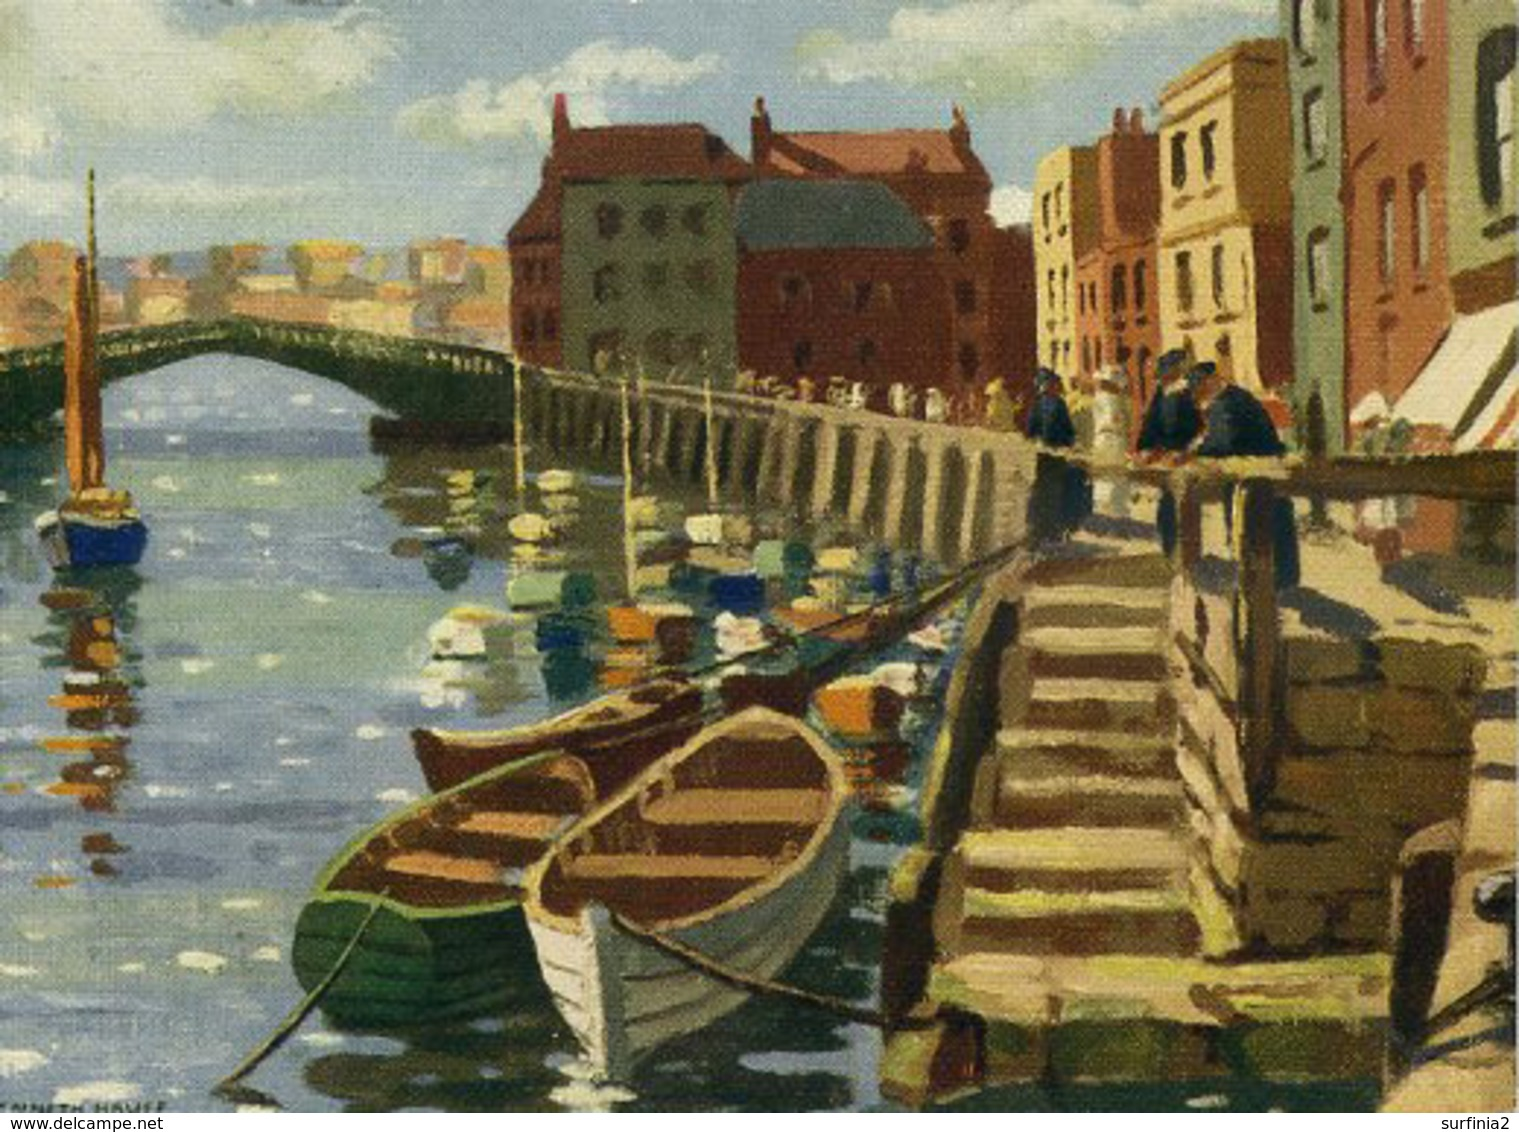 YORKS - WHITBY - 2 1950s CARDS BY KENNETH HAUFF - ART - Whitby